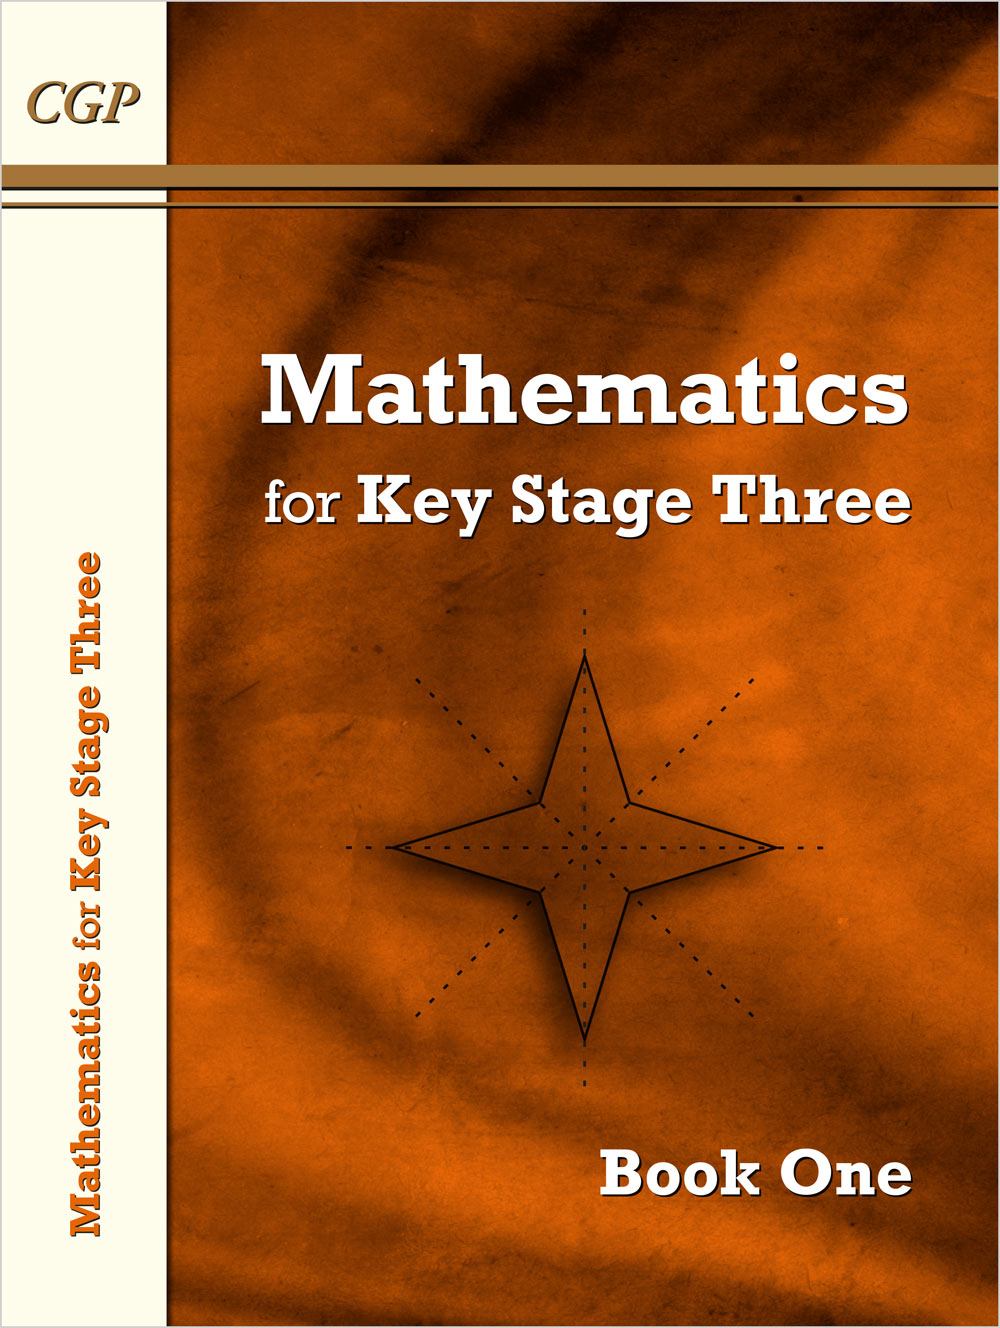 M1NN31 - KS3 Maths Textbook 1